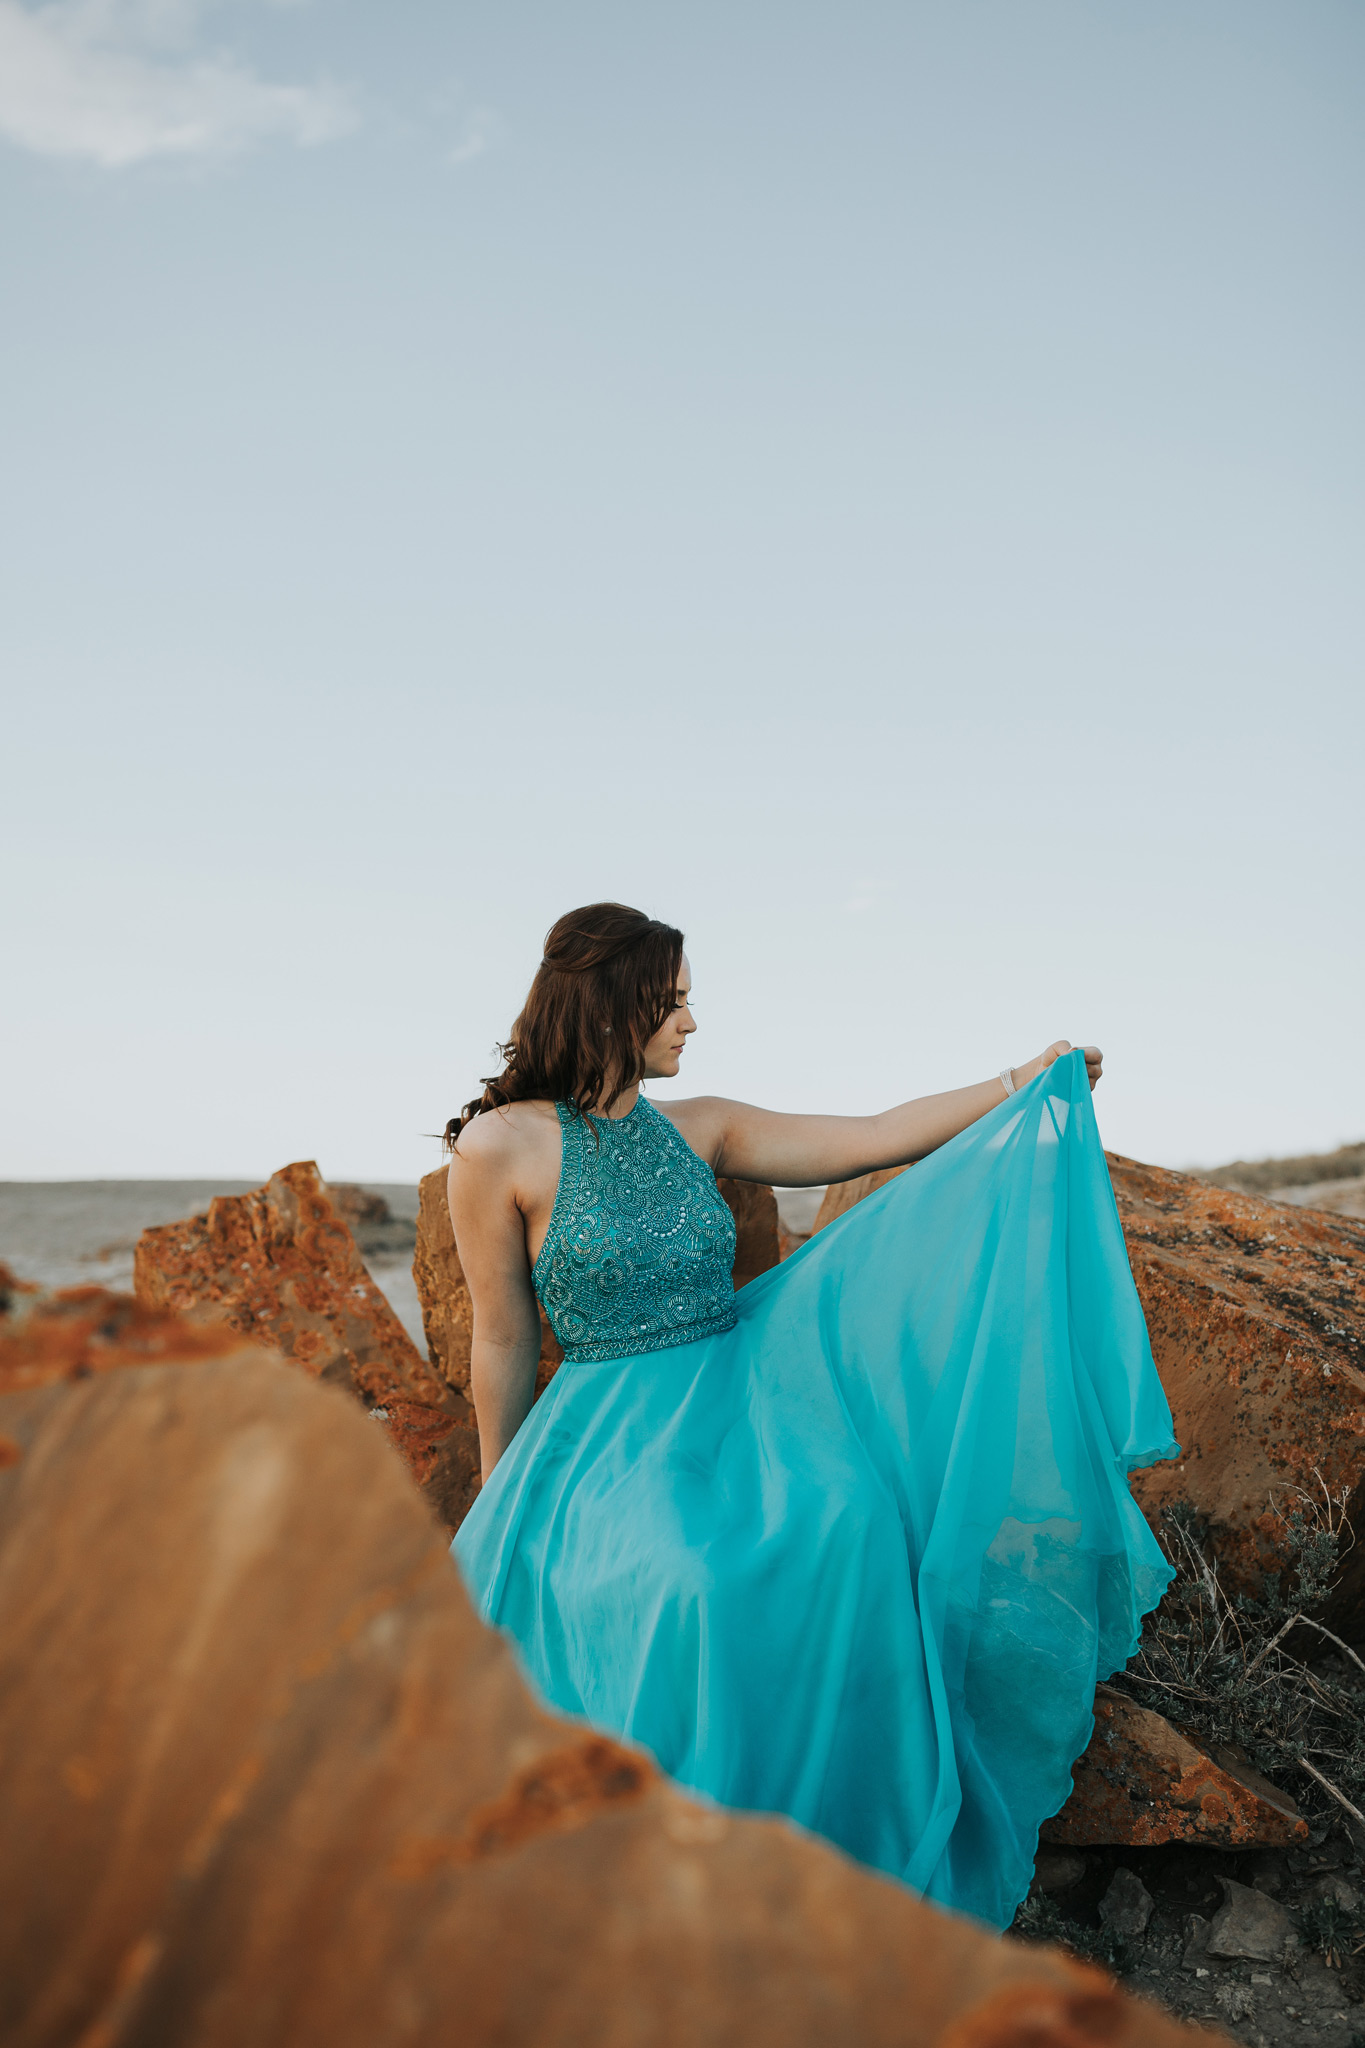 adventurous grad photo holding up skirt of dress in one hand